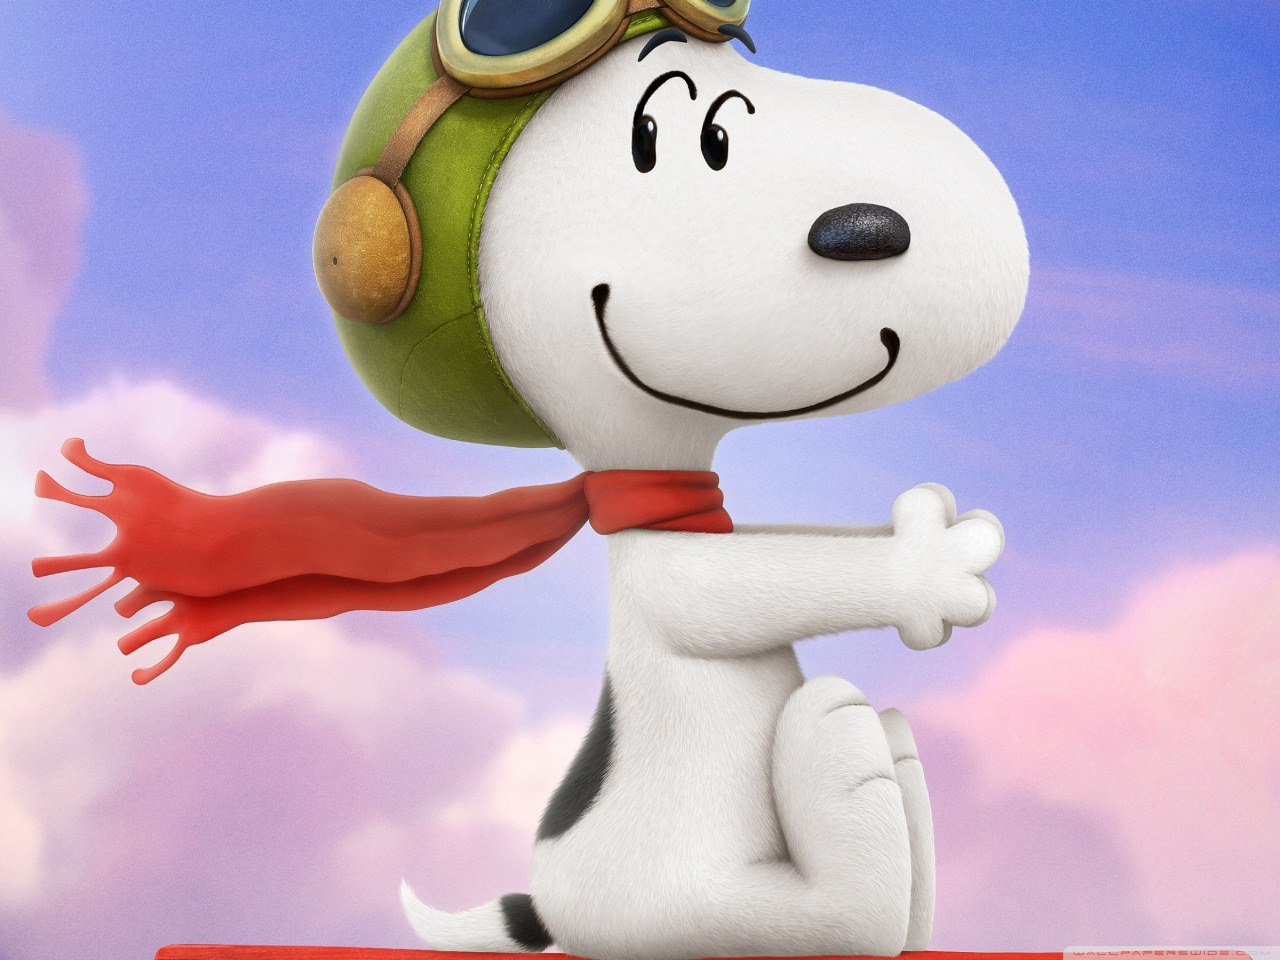 Peanuts Snoopy Wallpaper